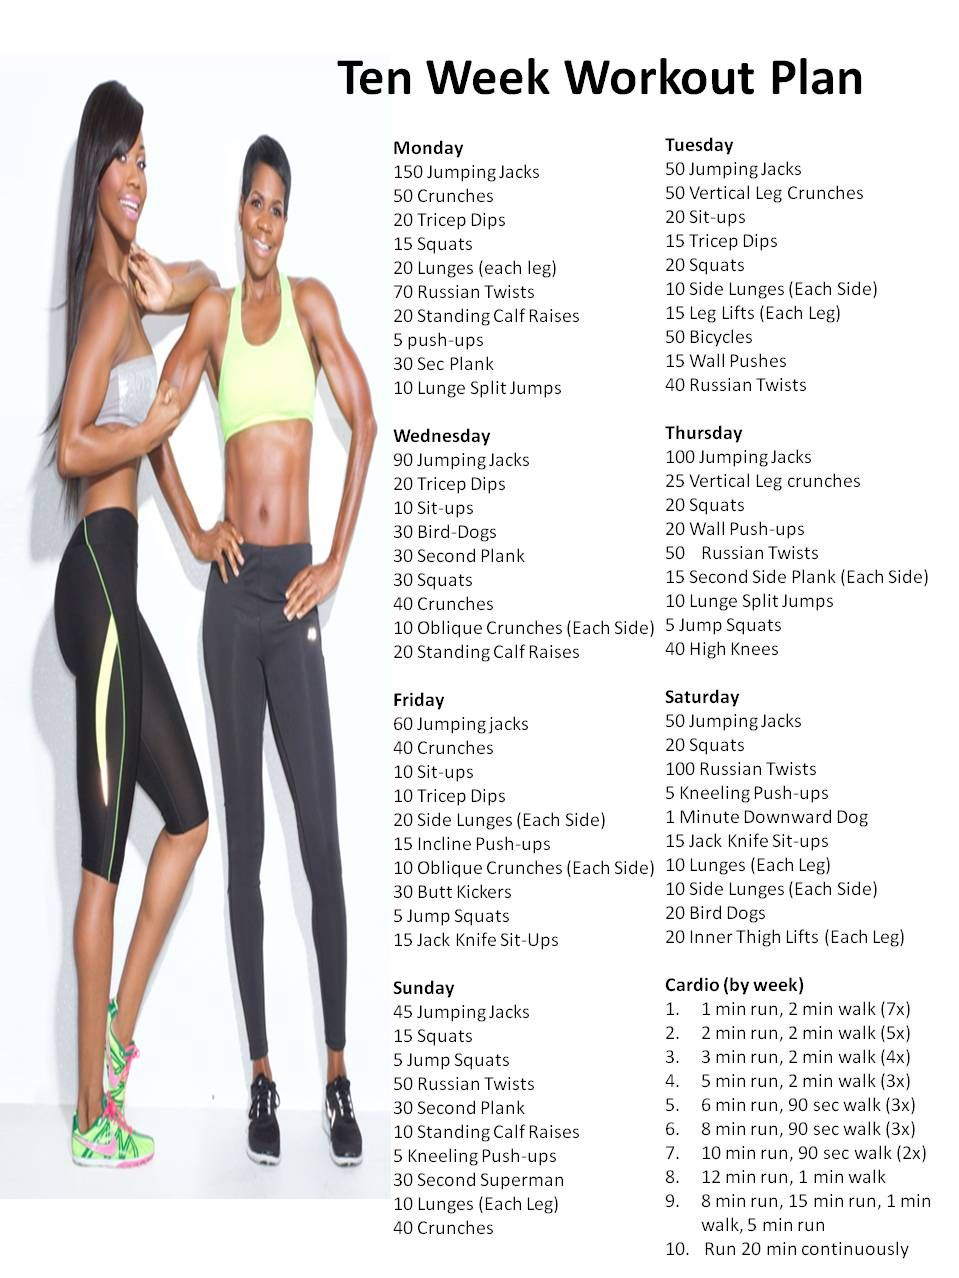 Ten Week Workout Plan  Diet And Exercise  Stomach -6809